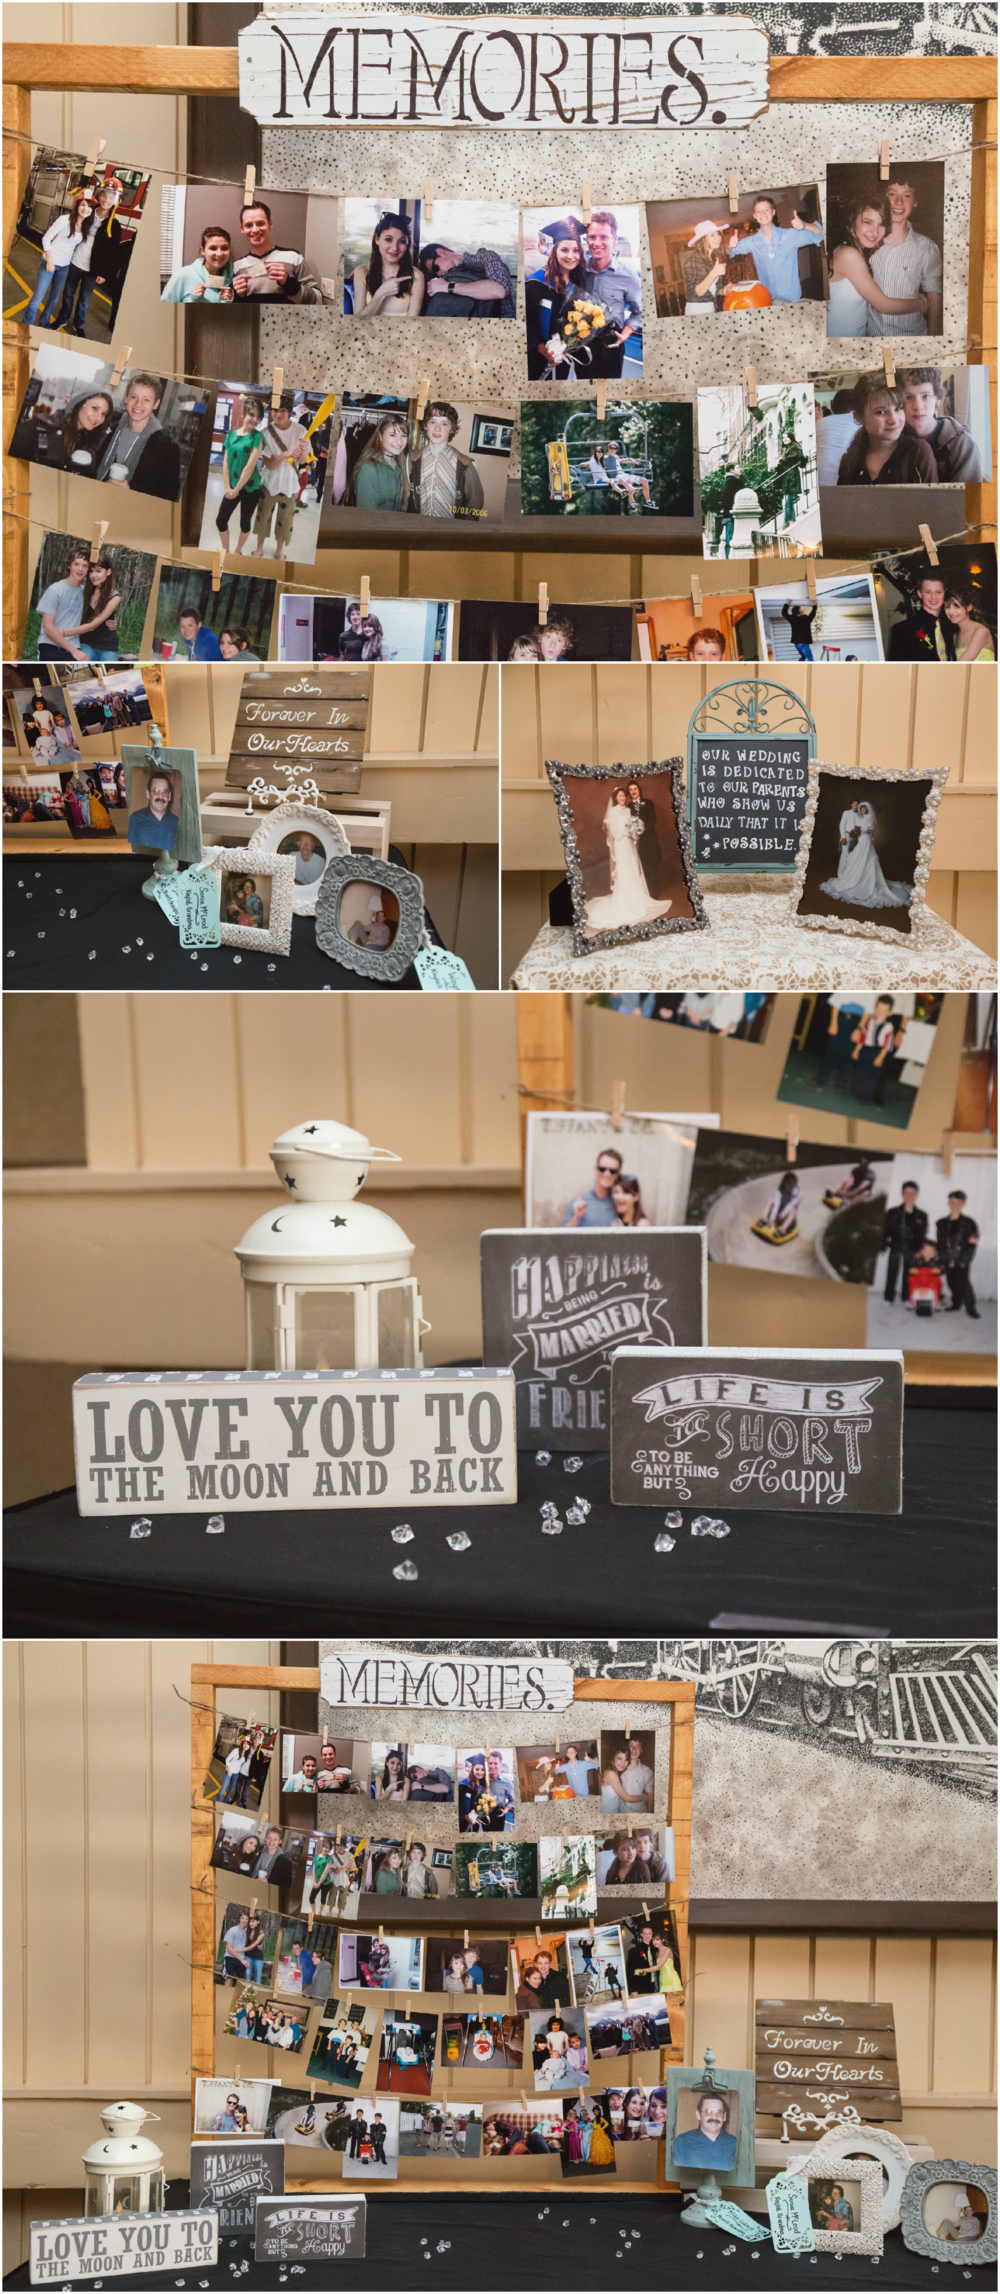 teal_coral_holy-family_medhat_wedding_33.png